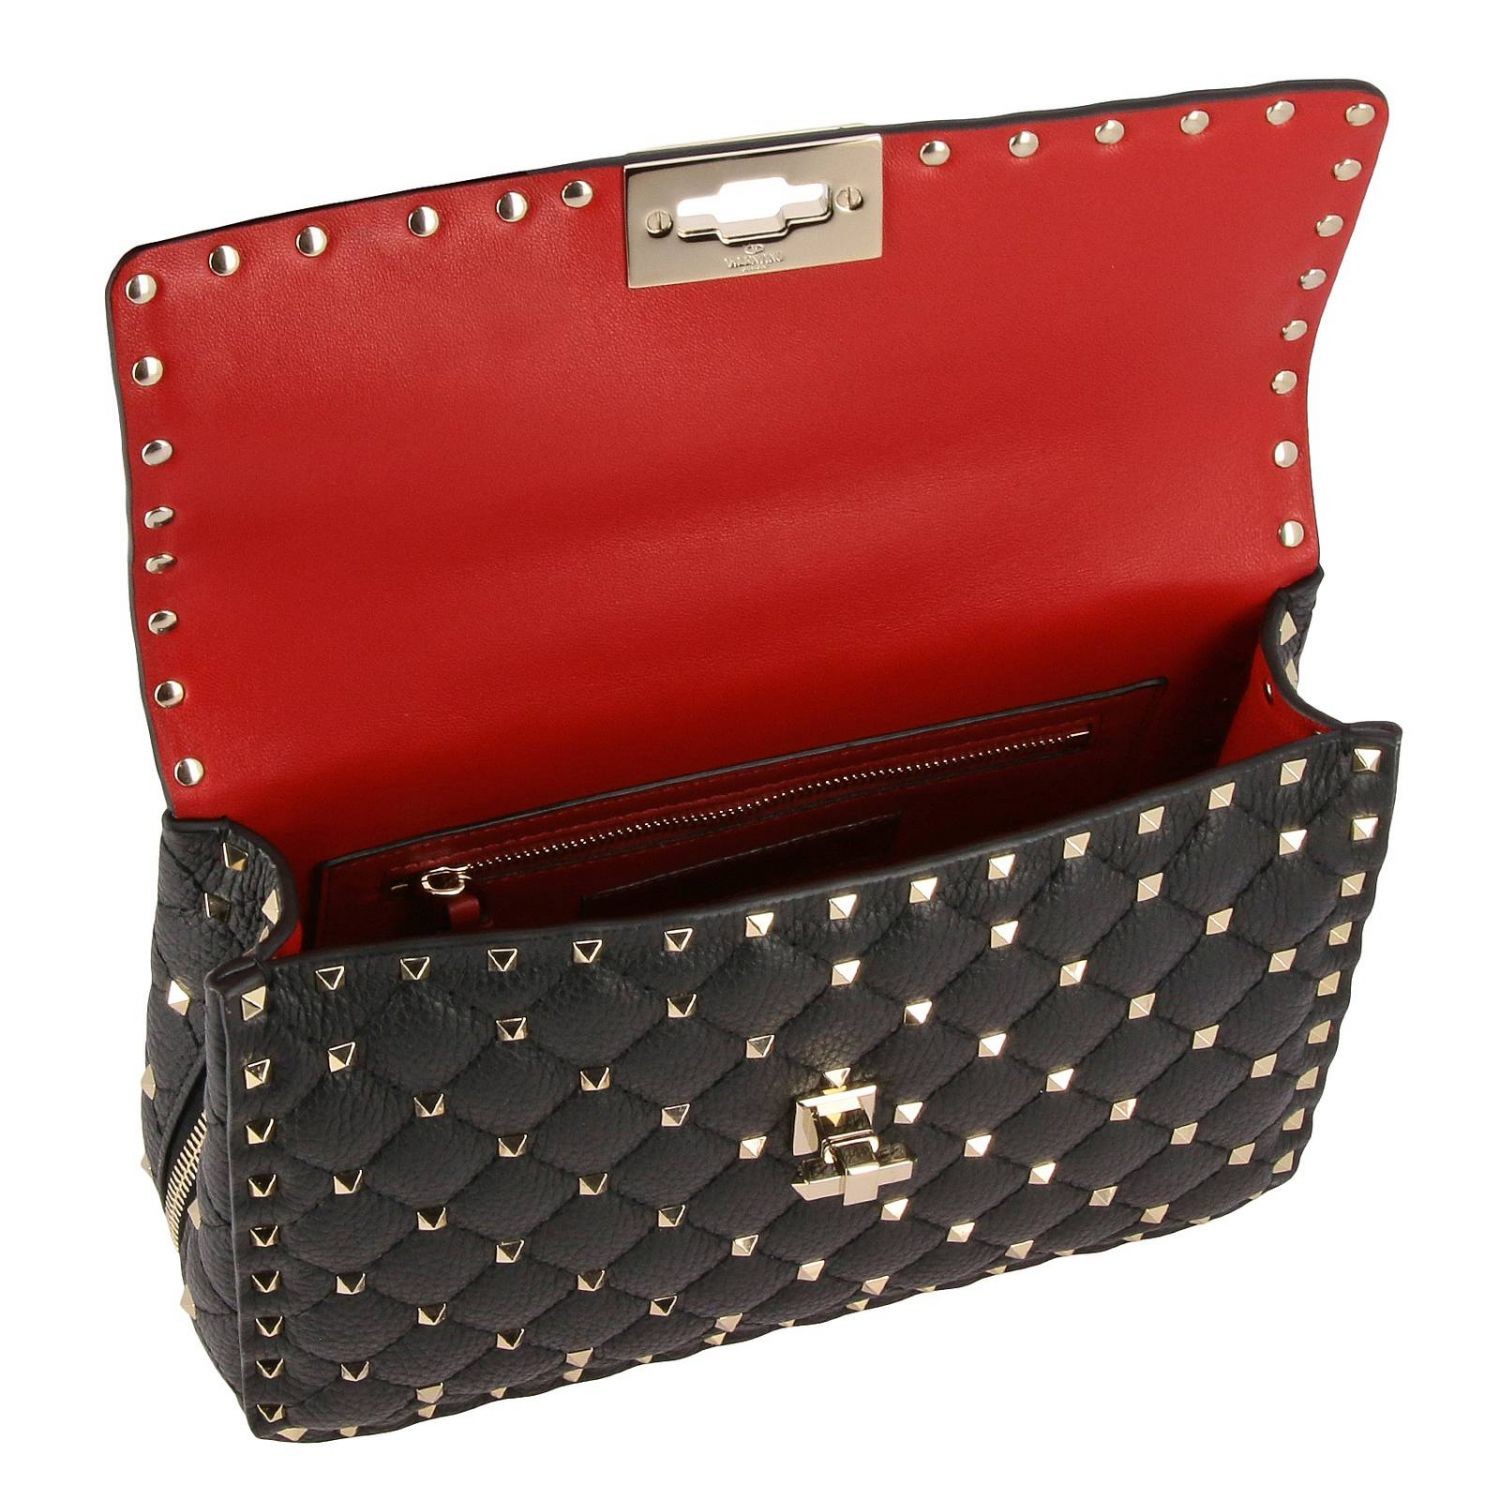 Rockstud Spike quilted leather bag with removable handle and shoulder strap black 5